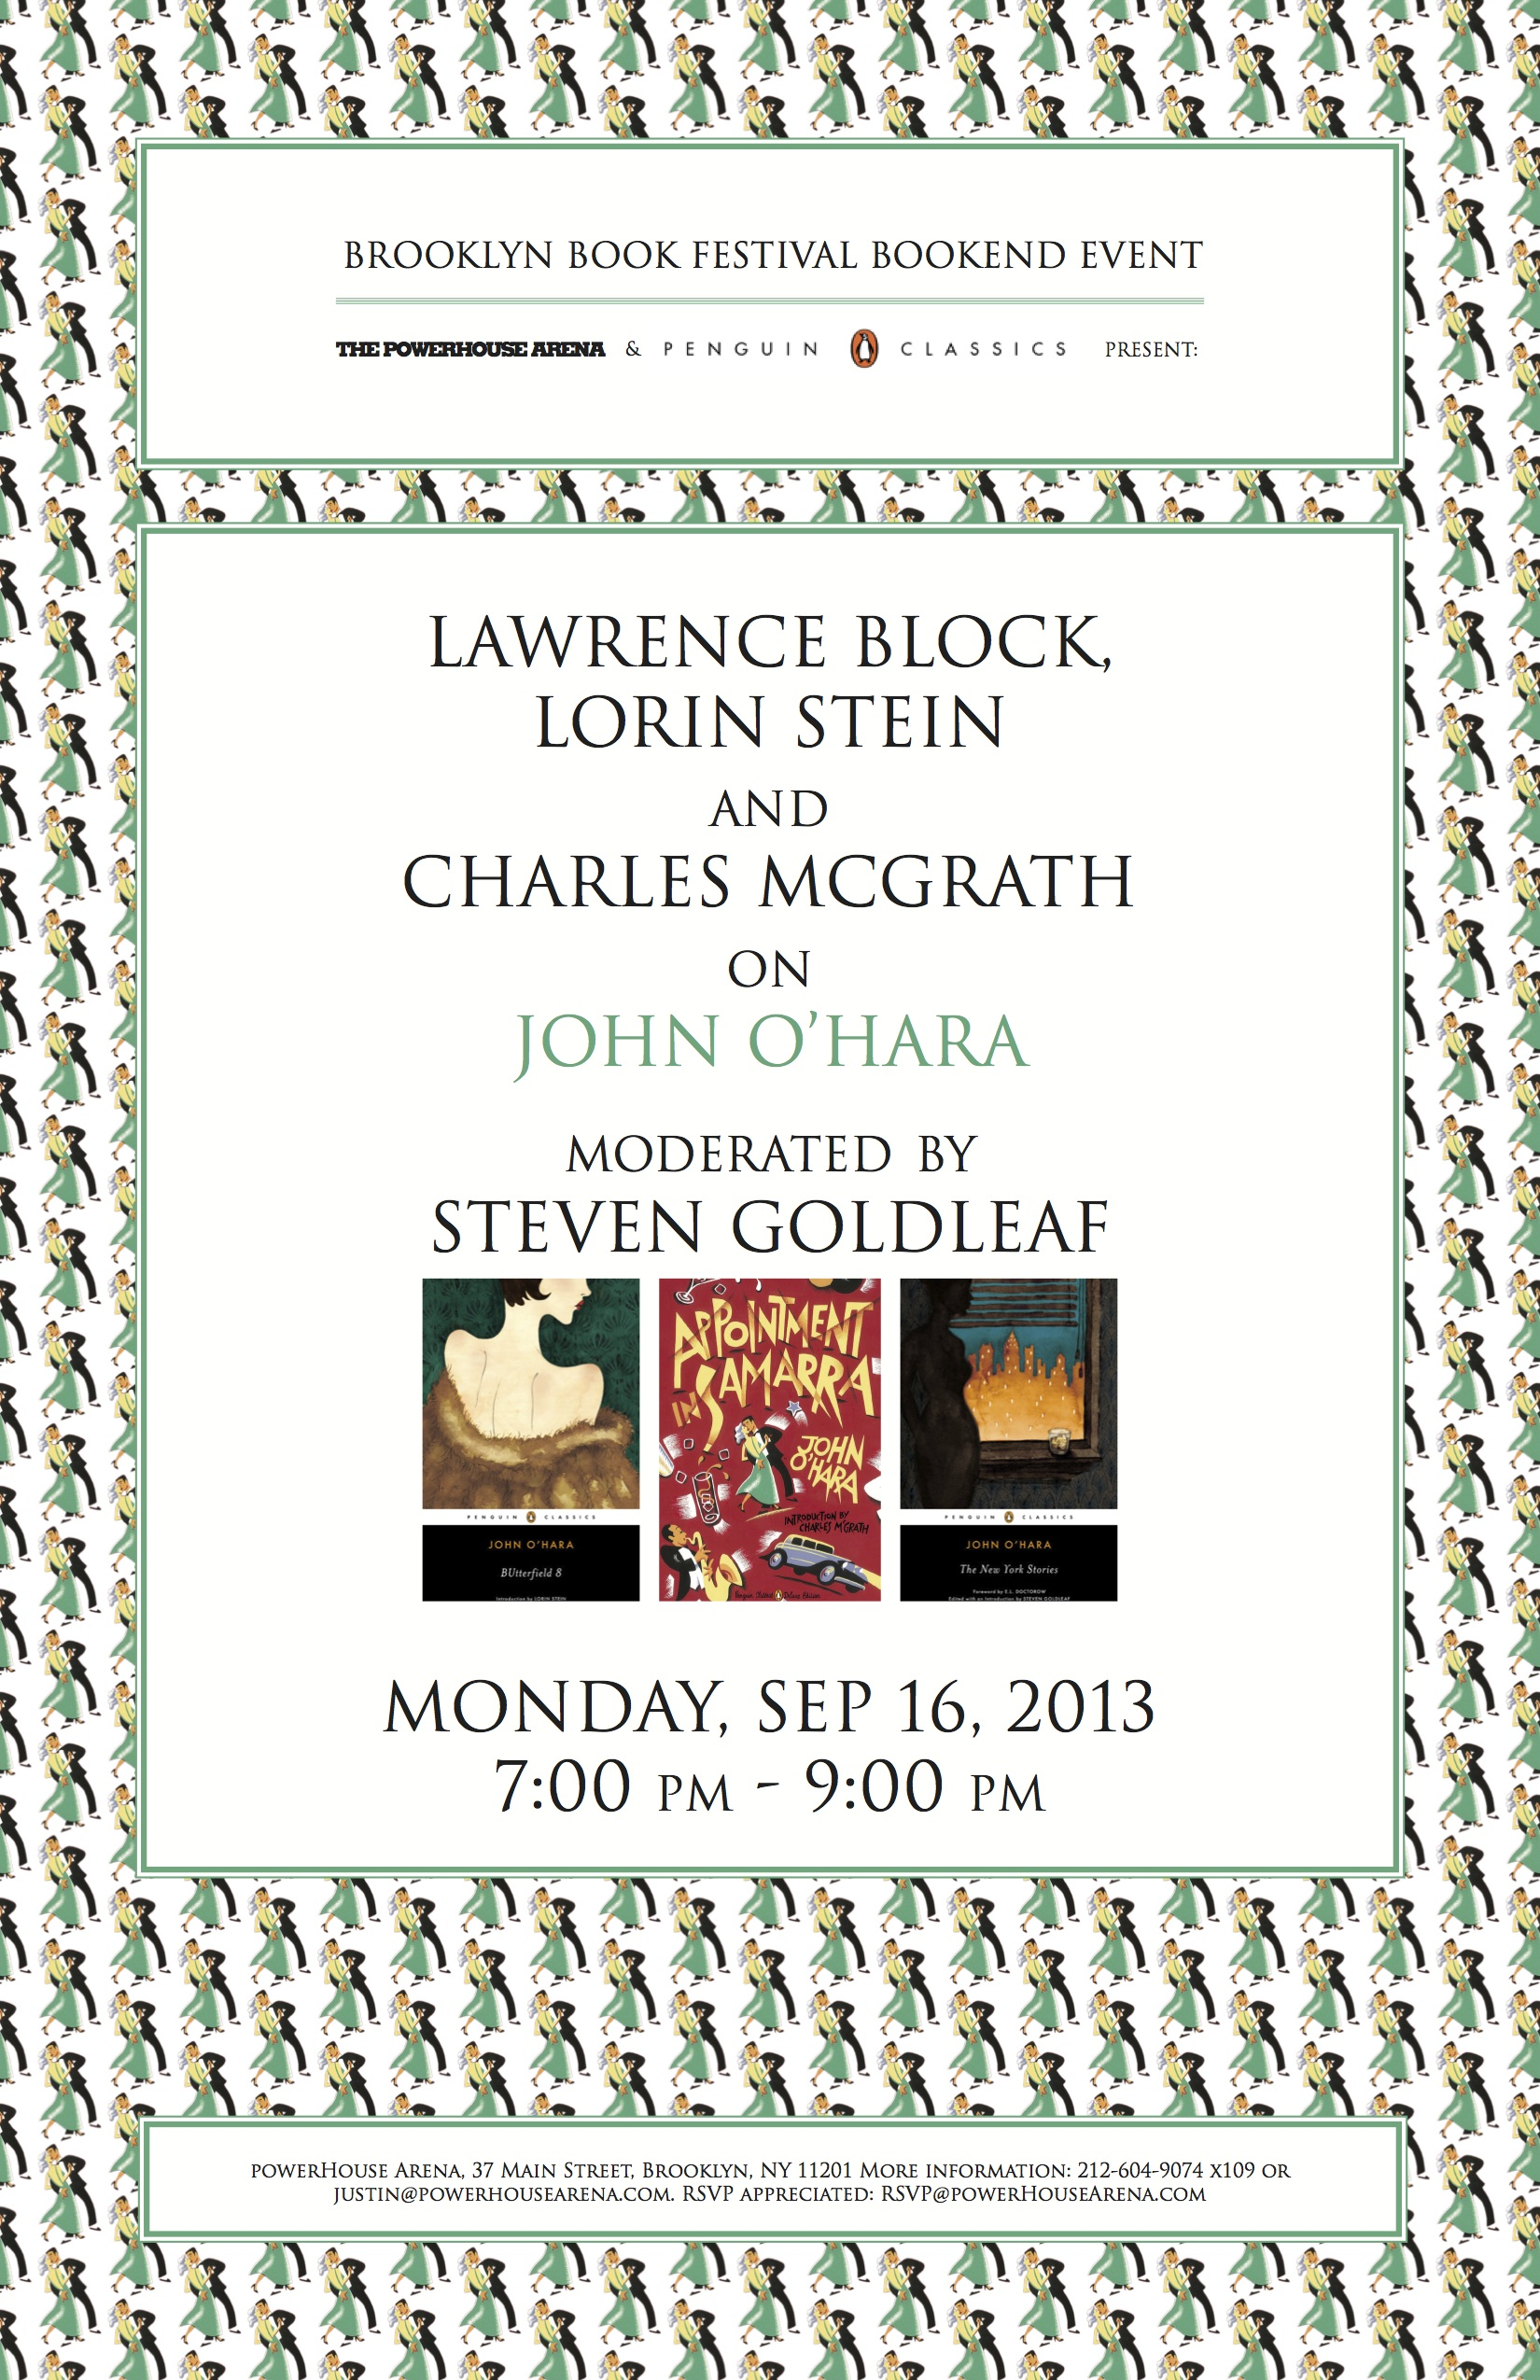 Brooklyn Book Festival Bookend Event: POWERHOUSE Arena + Penguin Classics Present: Lawrence Block, Lorin Stein and Charles McGrath on John O'Hara, moderated by Steven Goldleaf